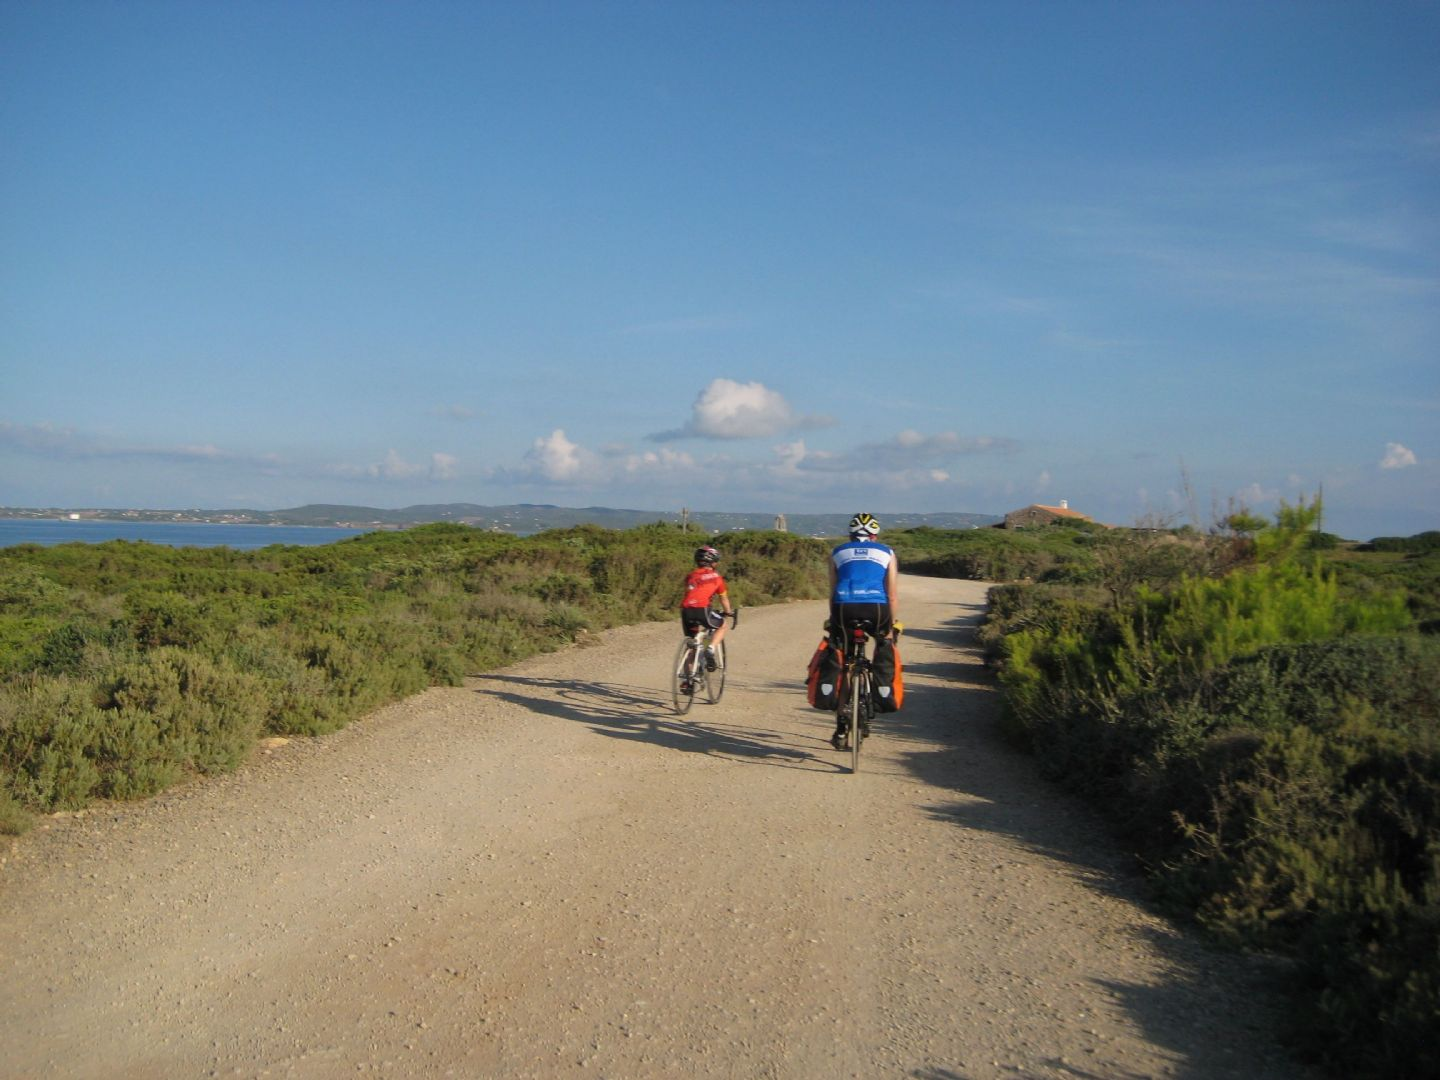 _Customer.81566.13585.jpg - Italy - Sardinia - Coasts and Islands - Self-Guided Family Cycling Holiday - Family Cycling